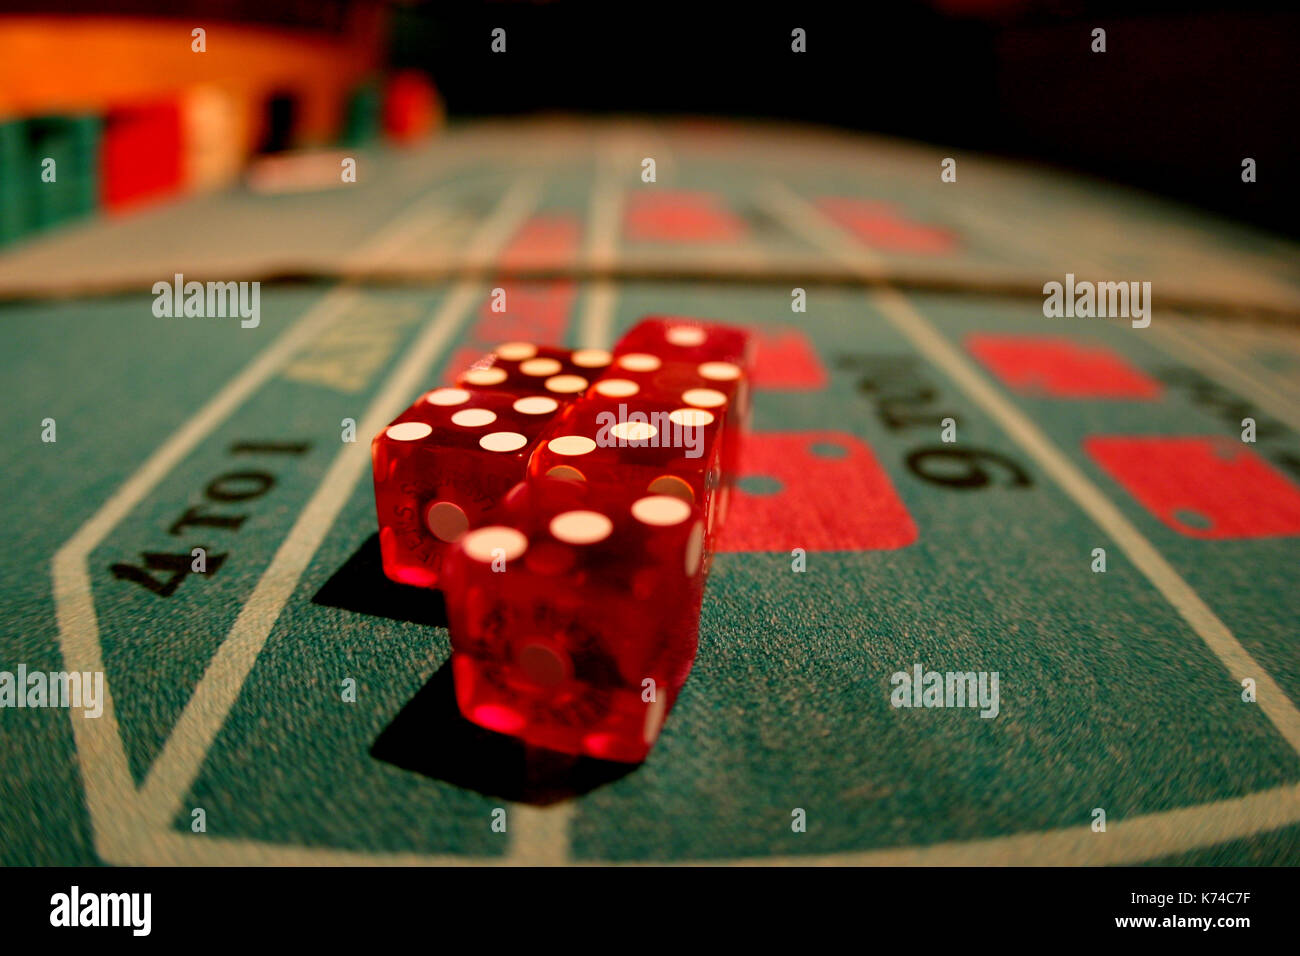 Dice on Craps Table Stock Photo